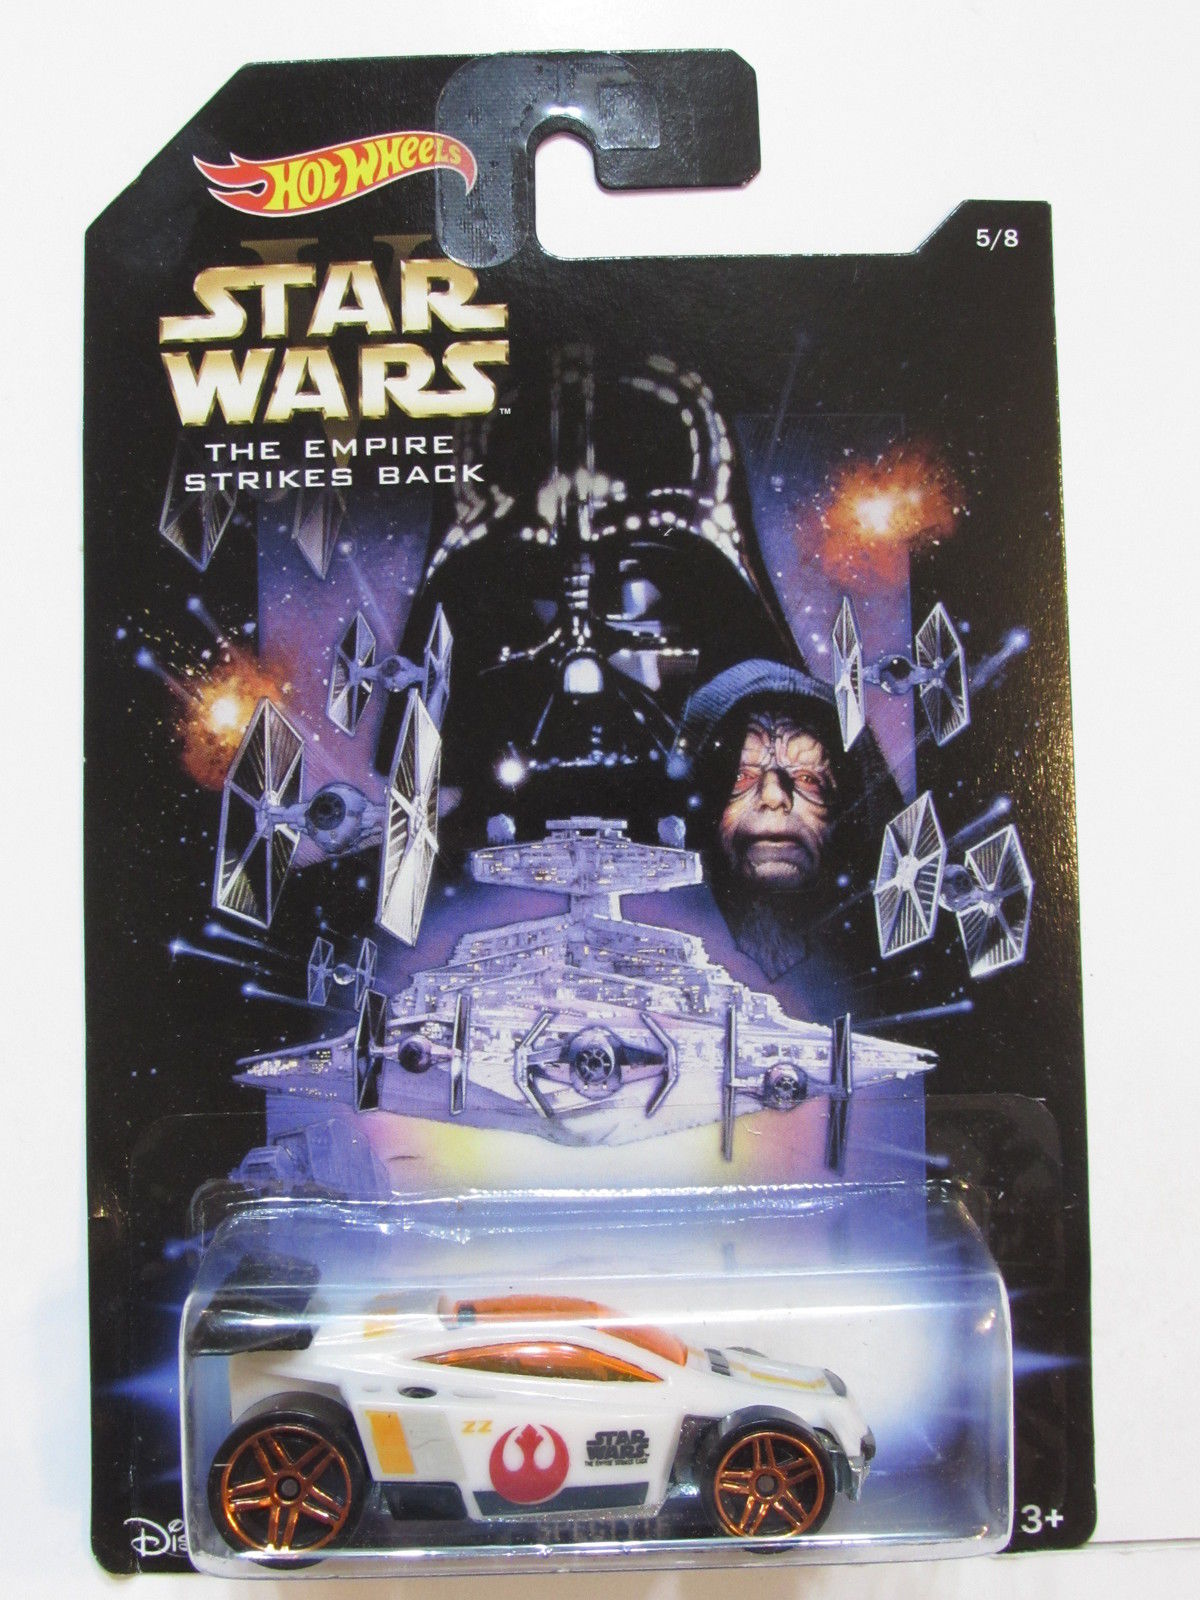 HOT WHEELS STAR WARS 2015 THE EMPIRE STRIKES BACK SPECTYTE